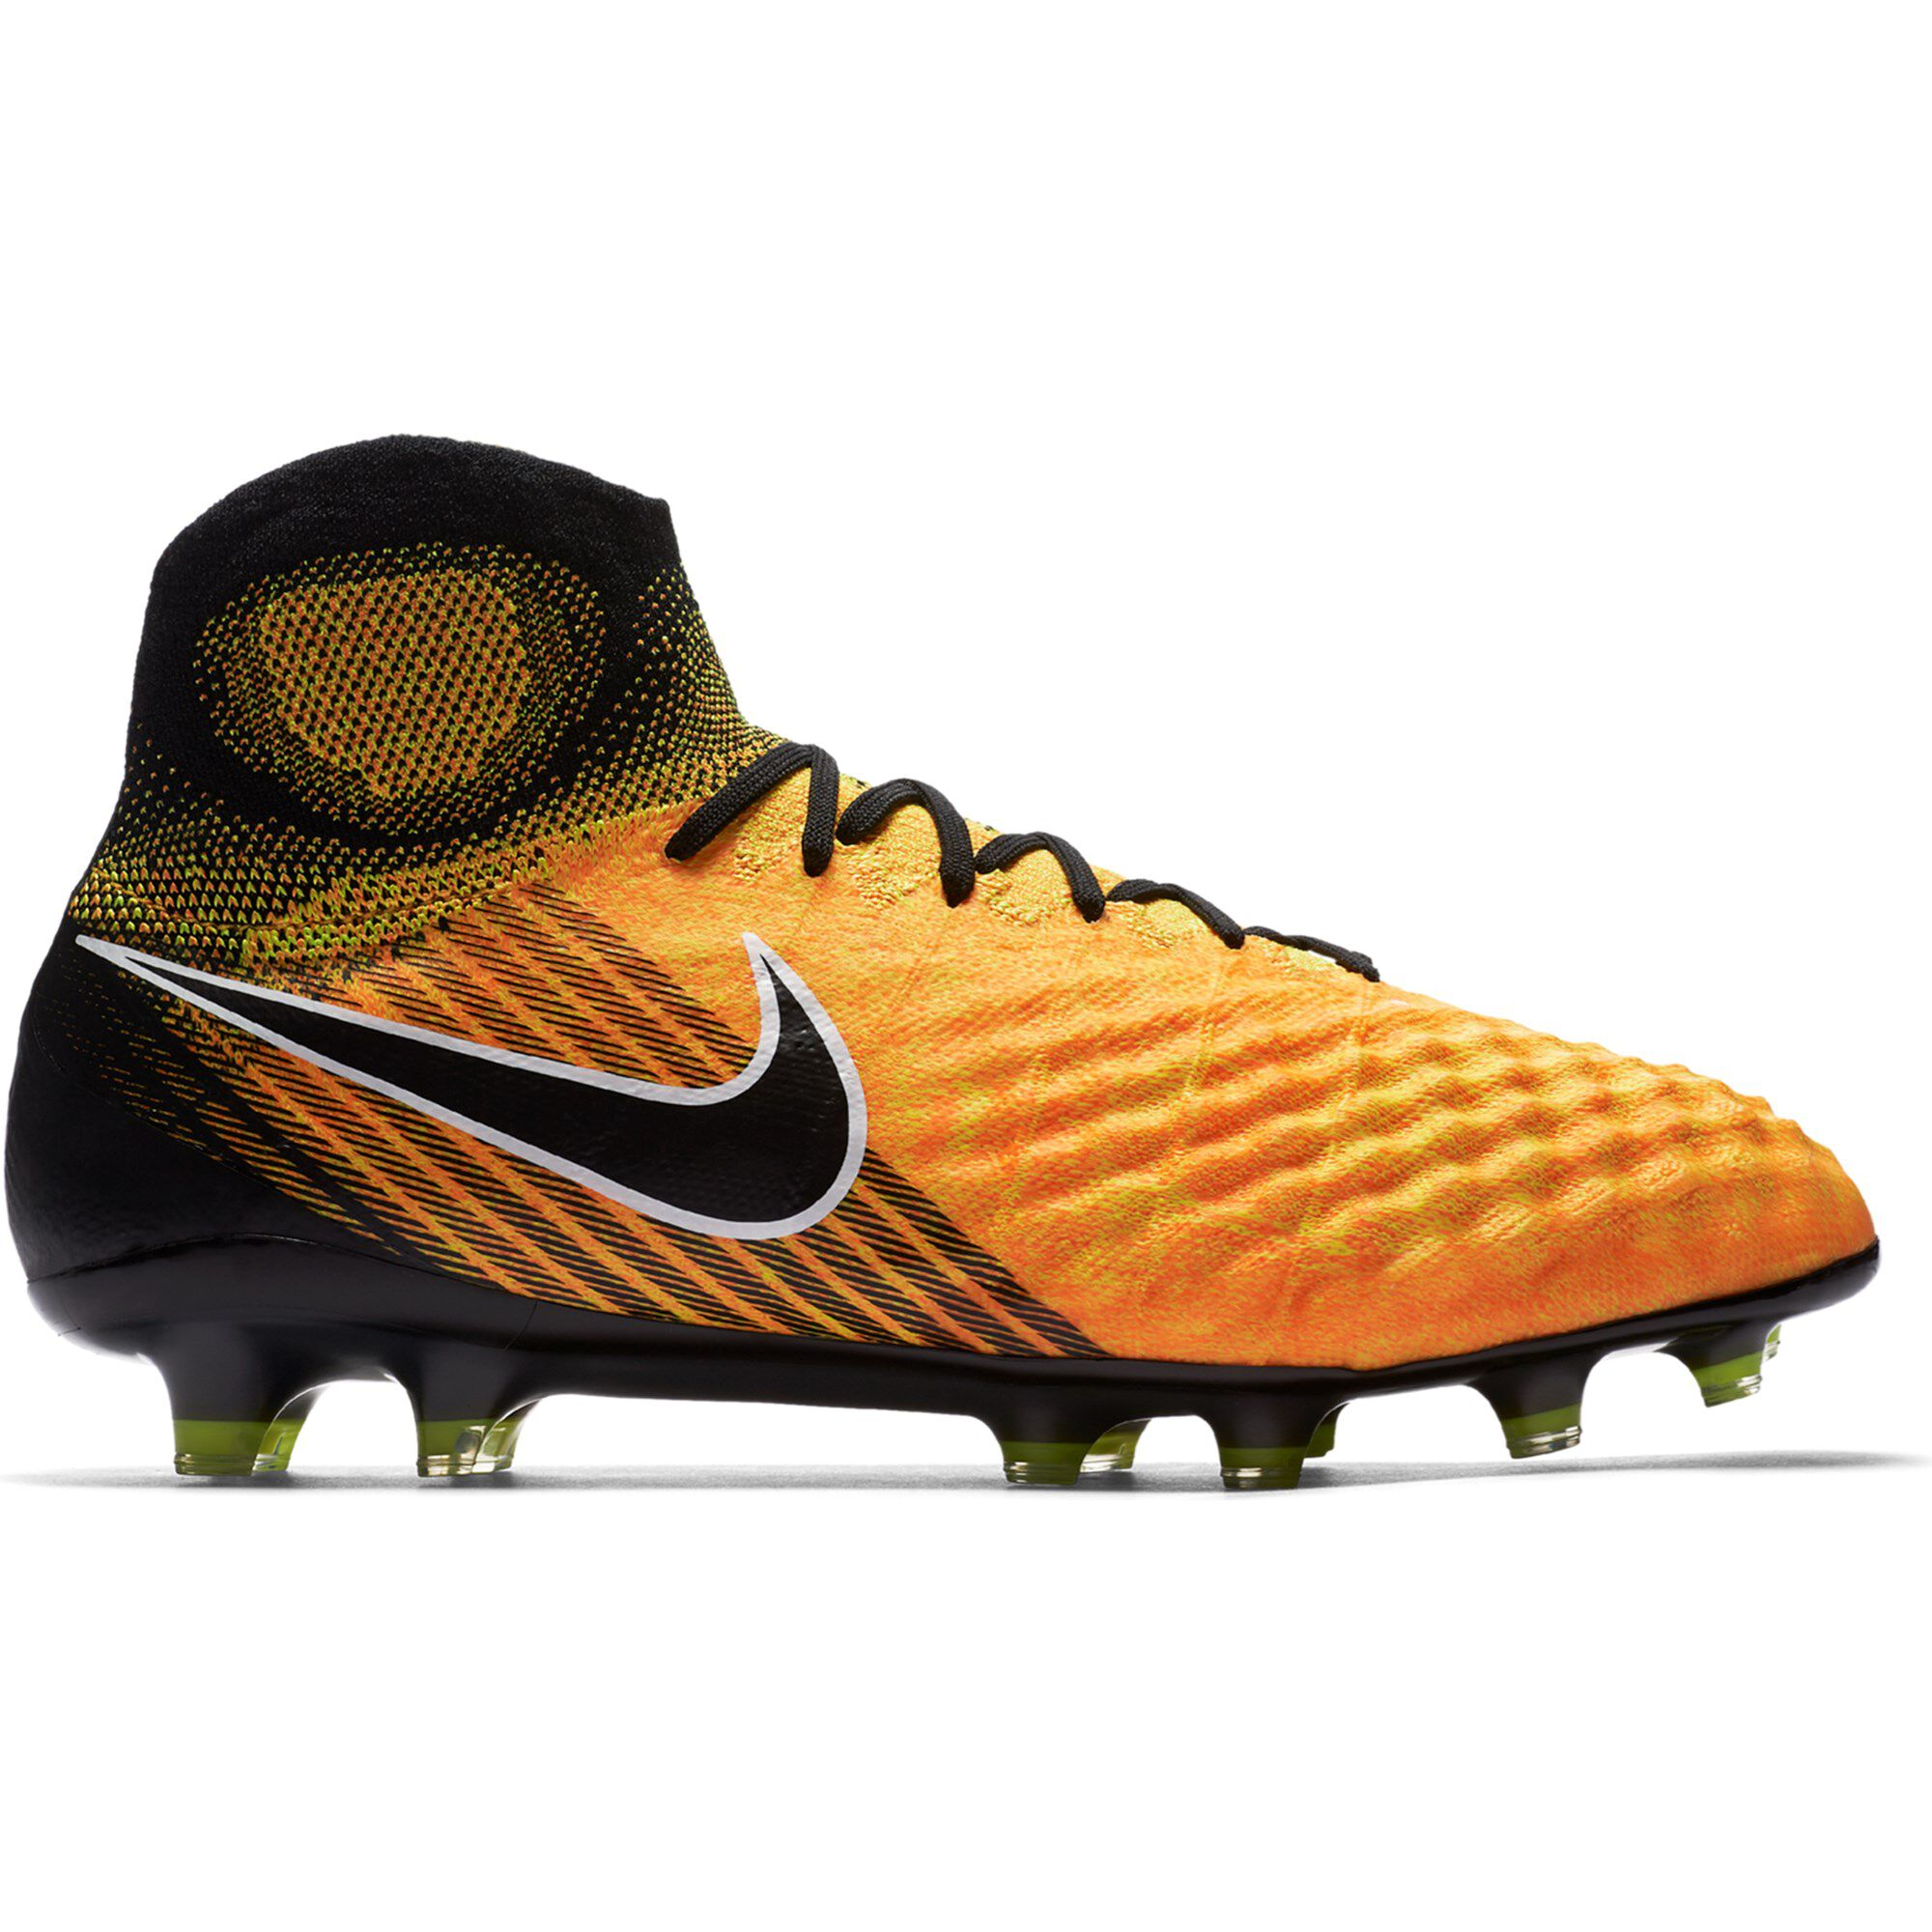 the best attitude ef51a 185c8 ... herre hvide grøn sort 44f21 8b154  cheap nike magista obra ii fg orange  8a949 c183a